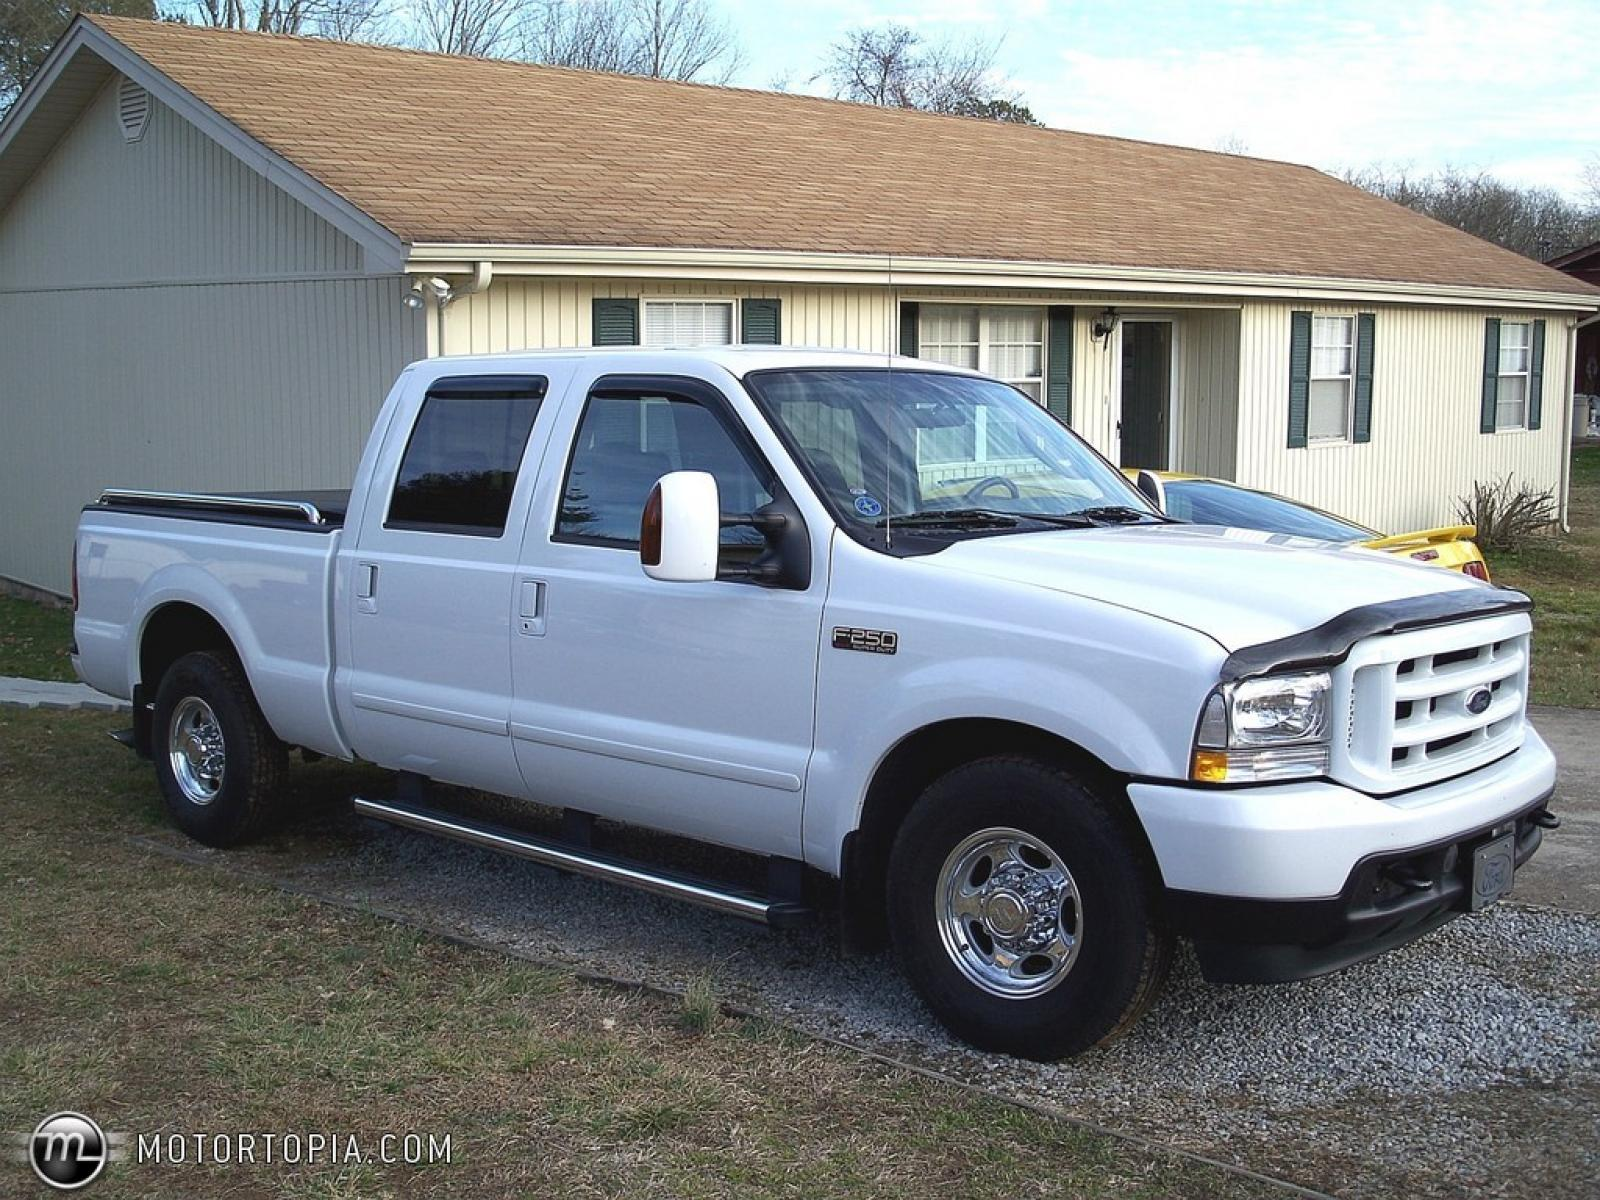 2004 Ford F 250 Super Duty Information And Photos Zombiedrive Supercab 10 800 1024 1280 1600 Origin